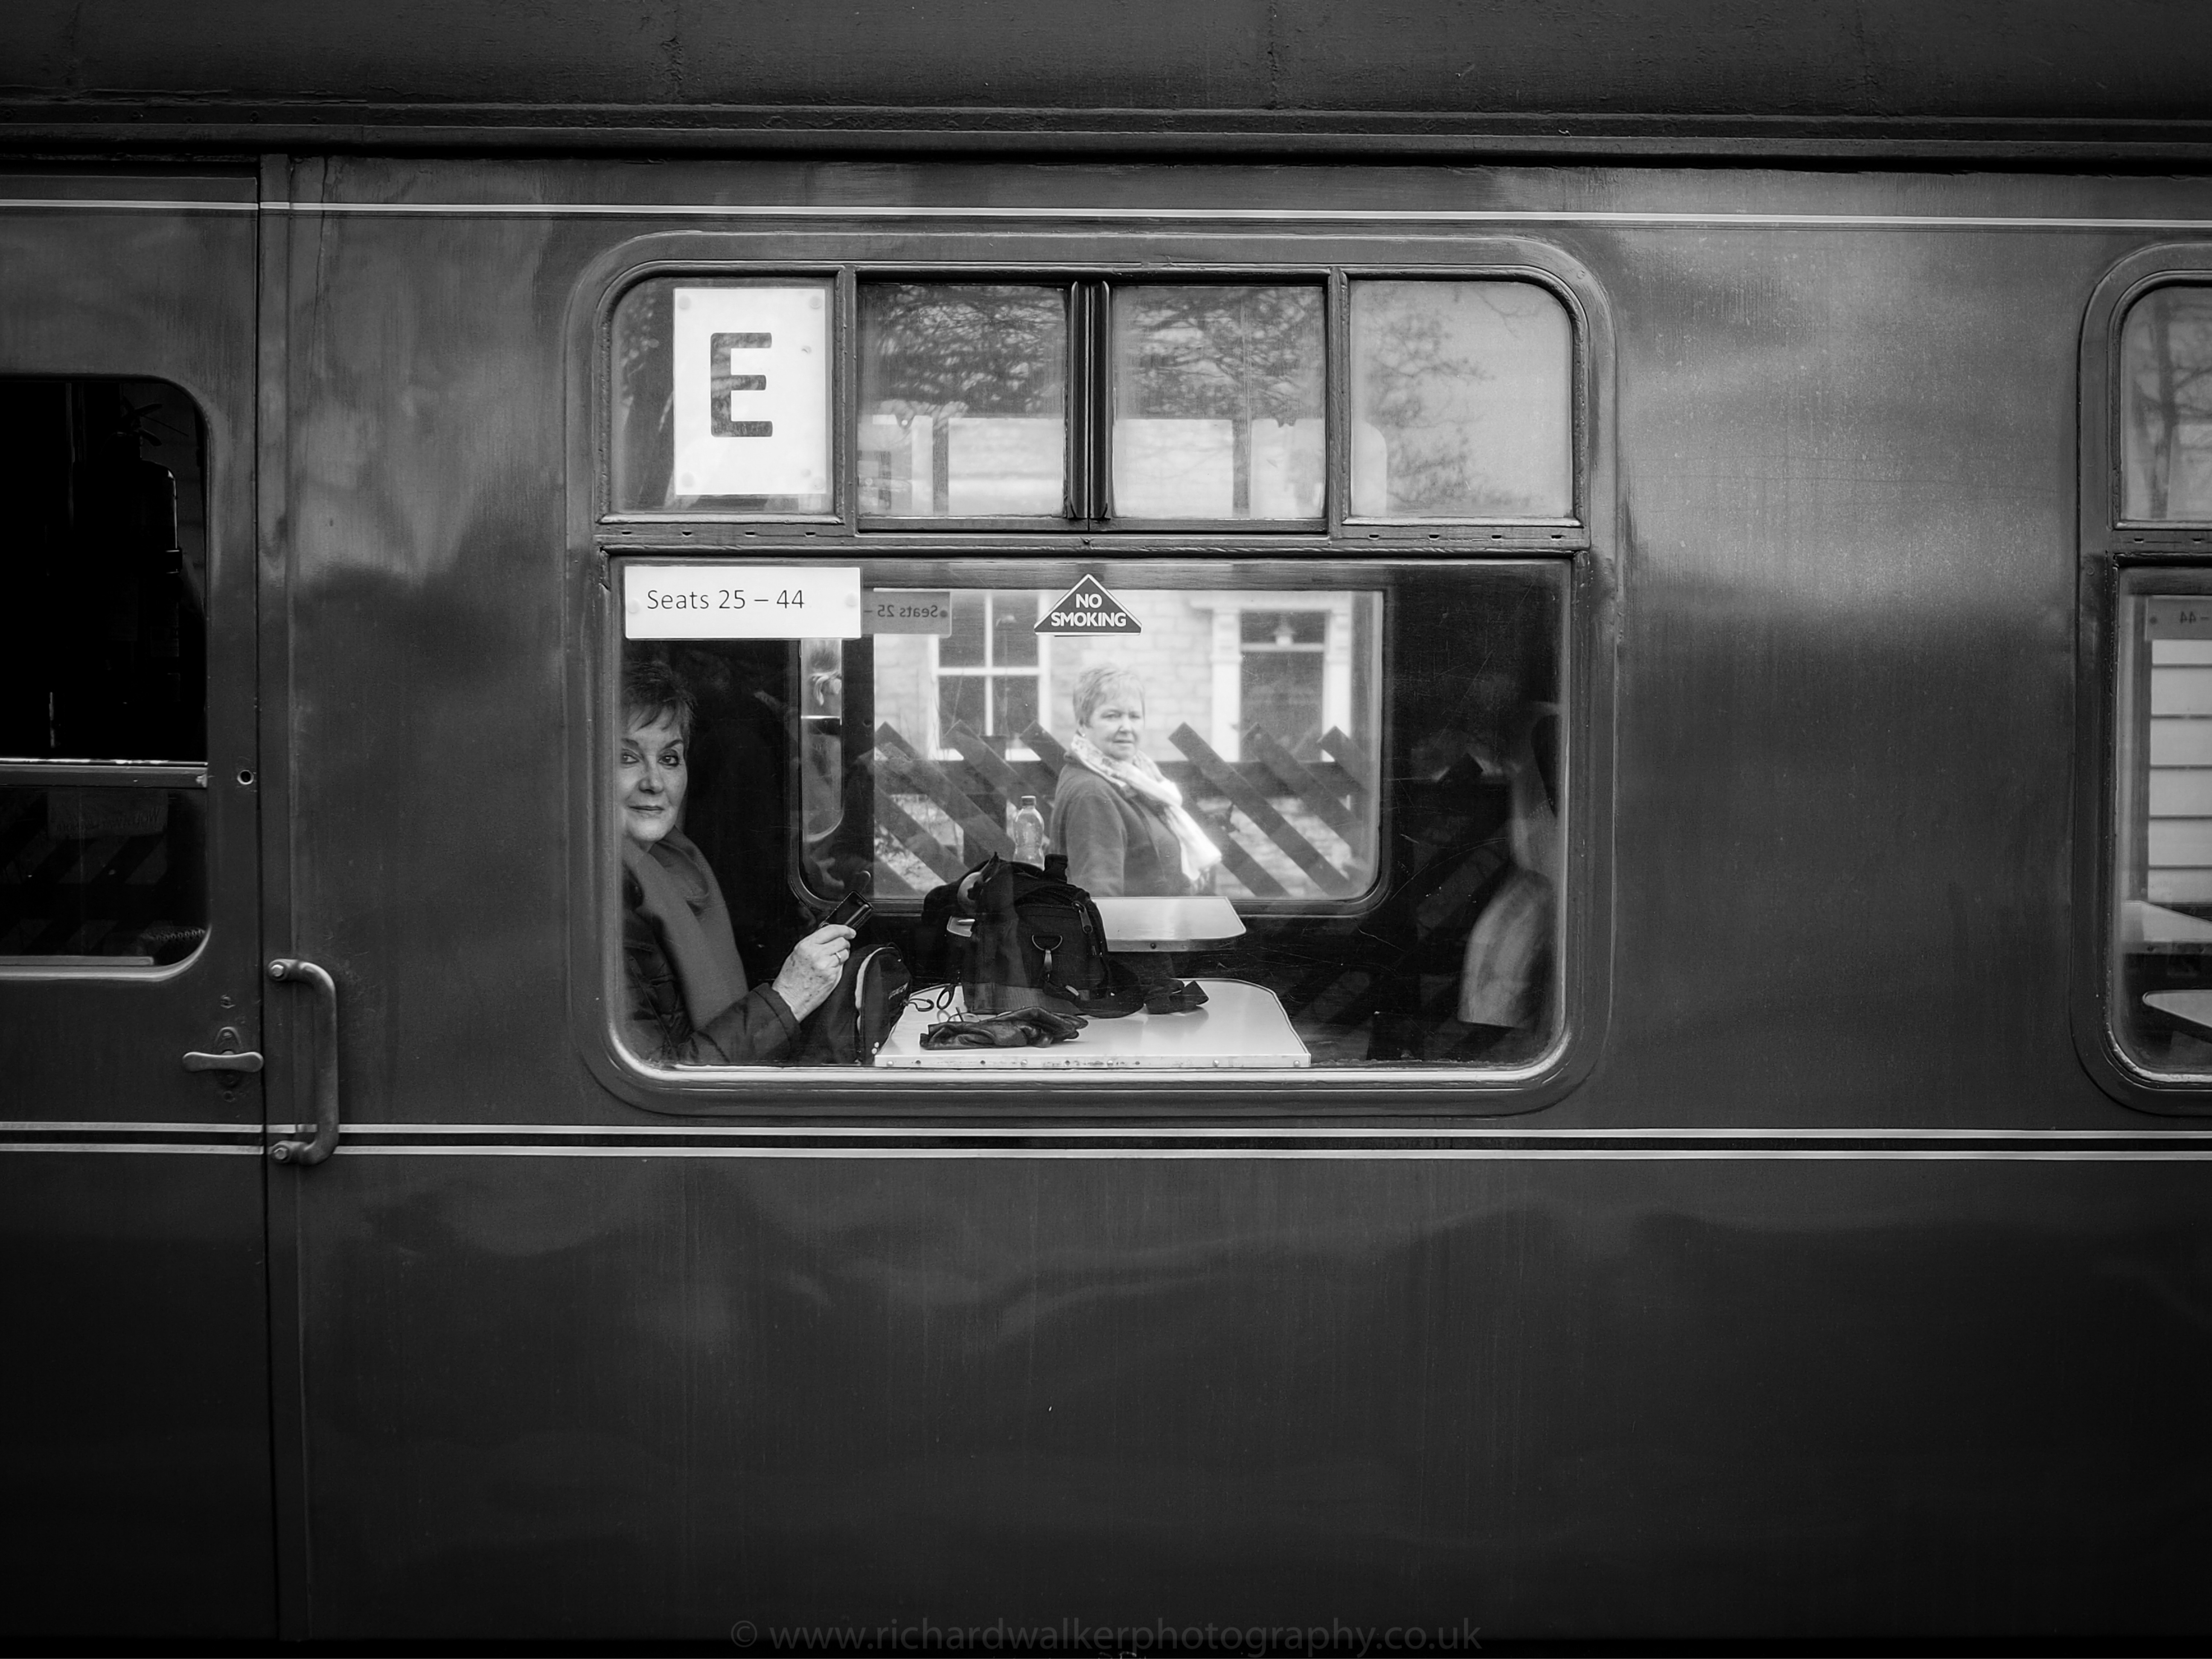 A female passenger sitting on a carriage of the Flying Scotsman looking out of the window